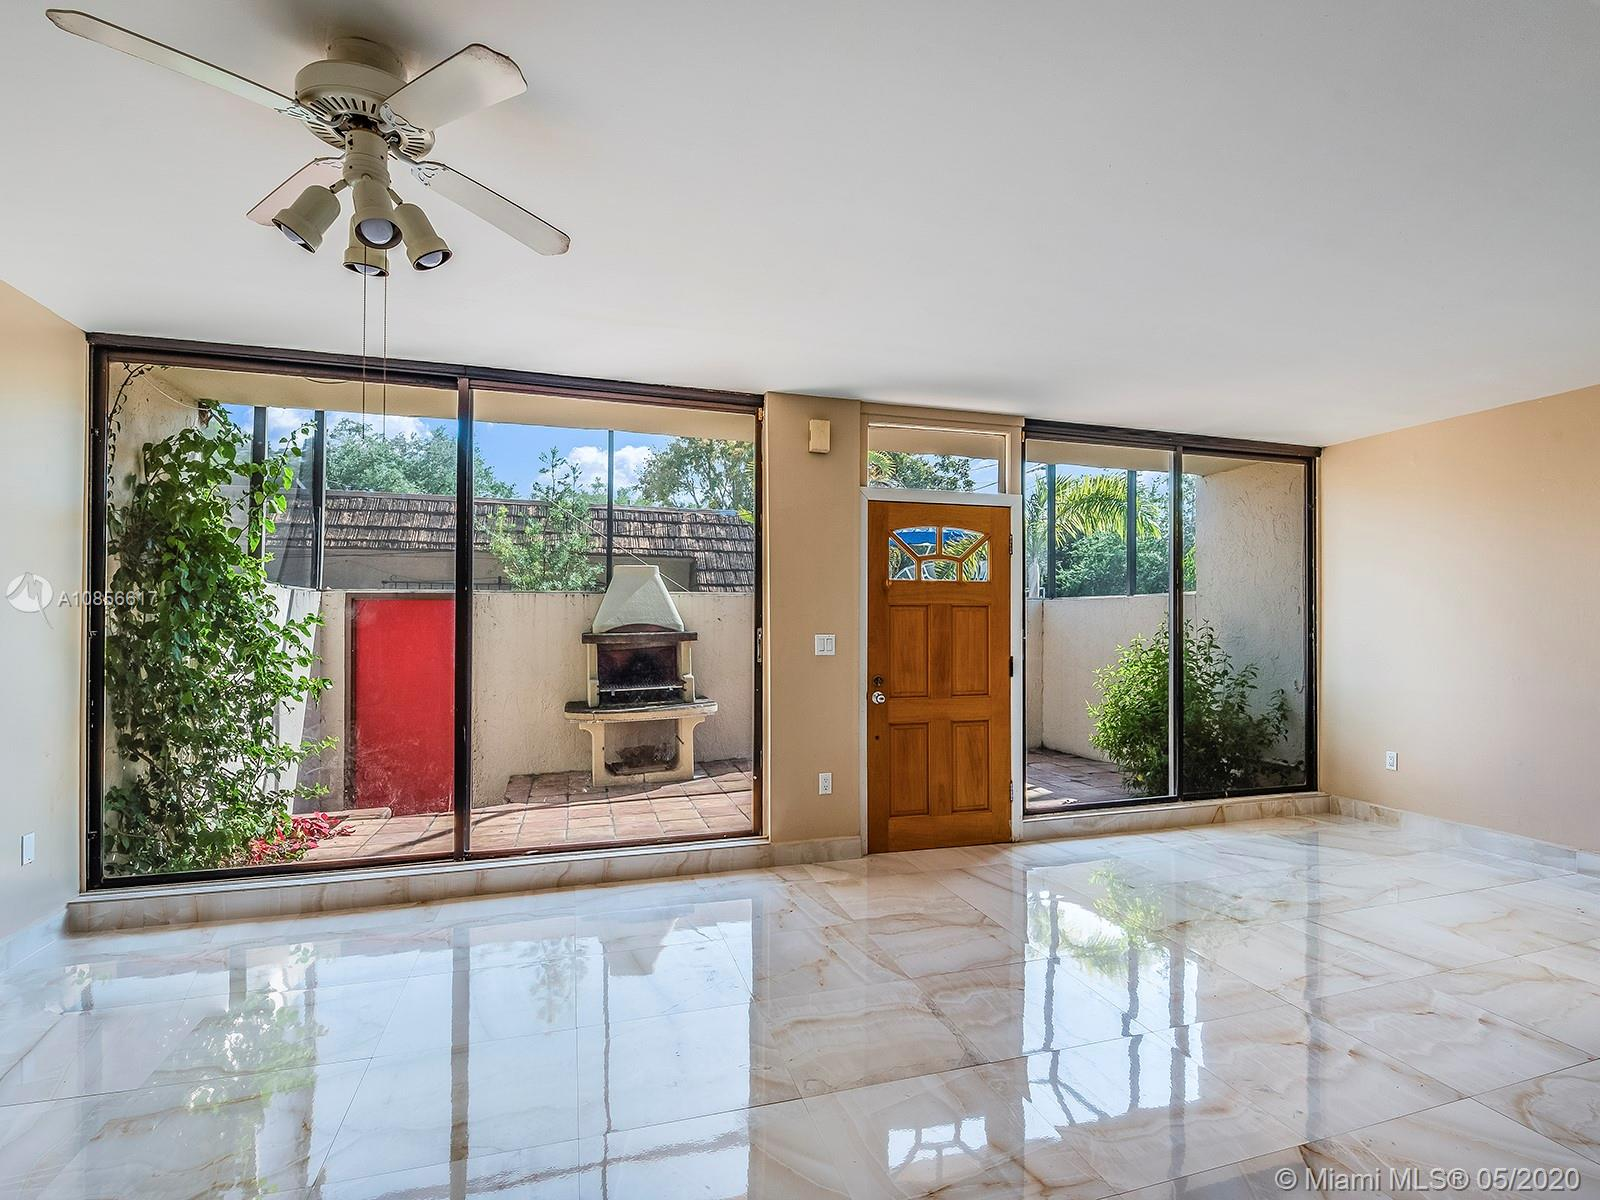 Remodeled 2 bed, 1.5 bath townhouse in the heart of Coconut Grove. This spacious unit features new bathrooms and an updated kitchen with stainless steel appliances. The large sliding glass doors fill the apartment with natural light, creating a beautiful shared space between the indoor living room and the large outdoor private deck – perfect for entertaining. Walk to all of Coconut Grove's restaurants, nightlife, shops, and parks. Next to US1, steps from Milam's Supermarket, Home Depot, and the Metrorail.